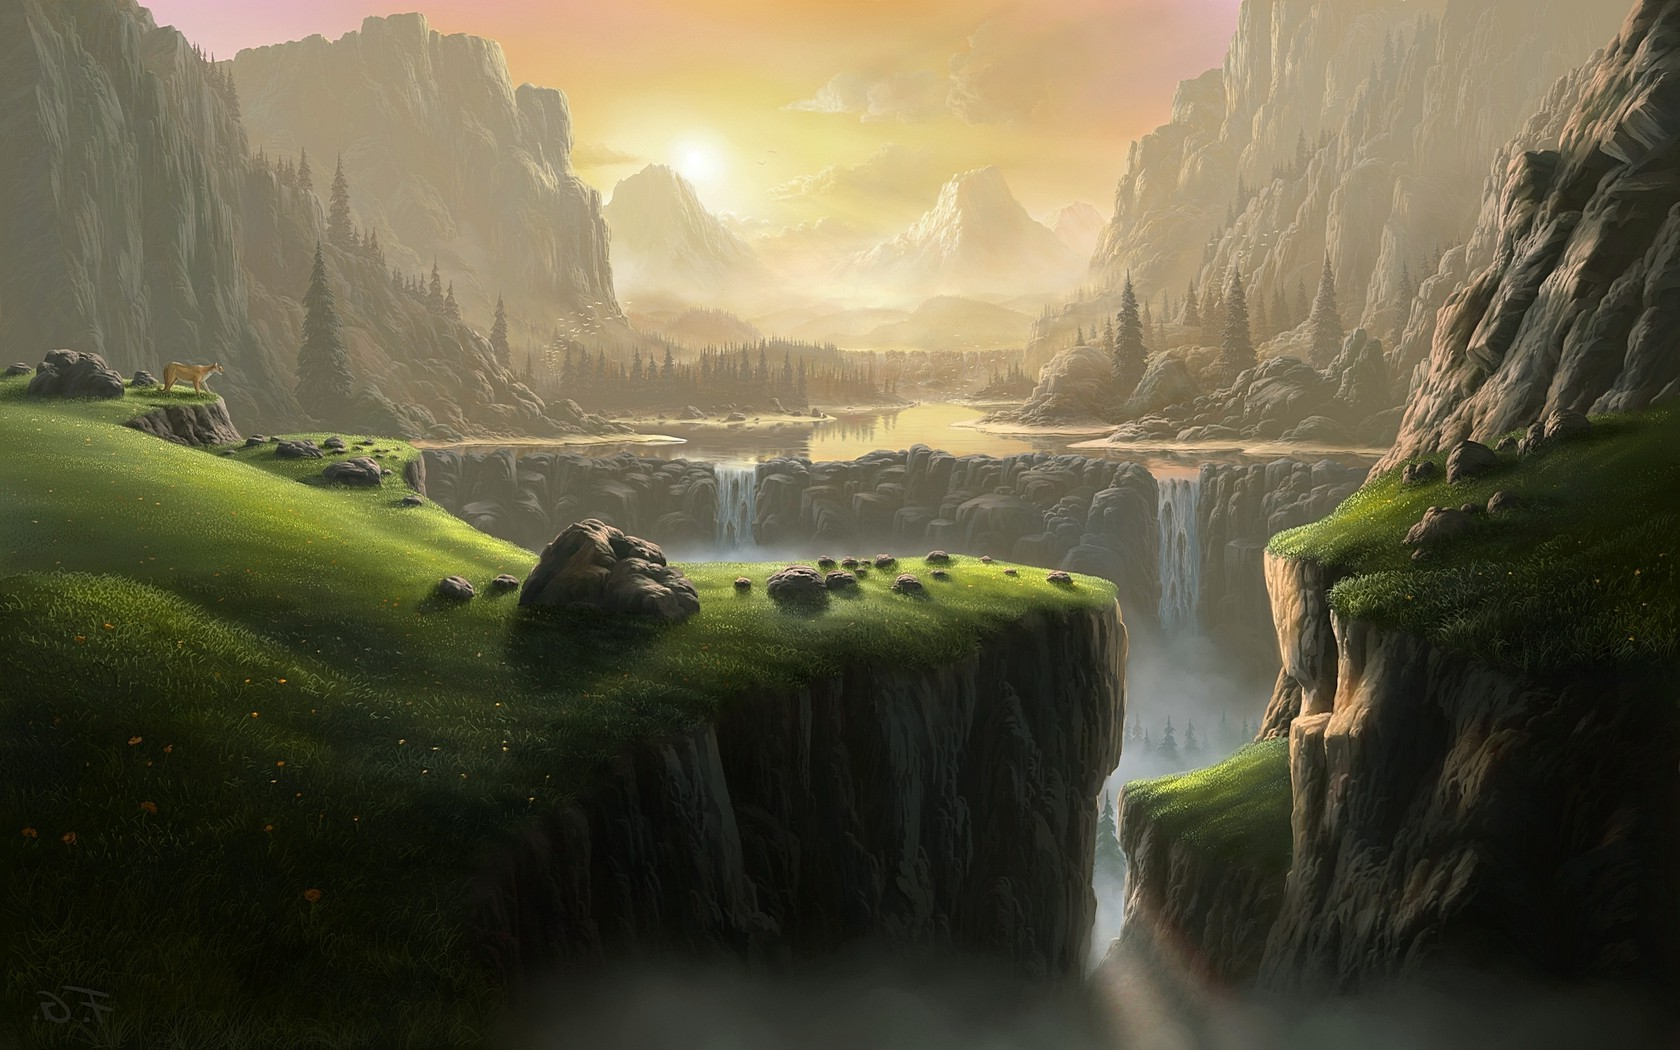 3d Candle Live Wallpaper Landscape Waterfall Fantasy Art River Mountain